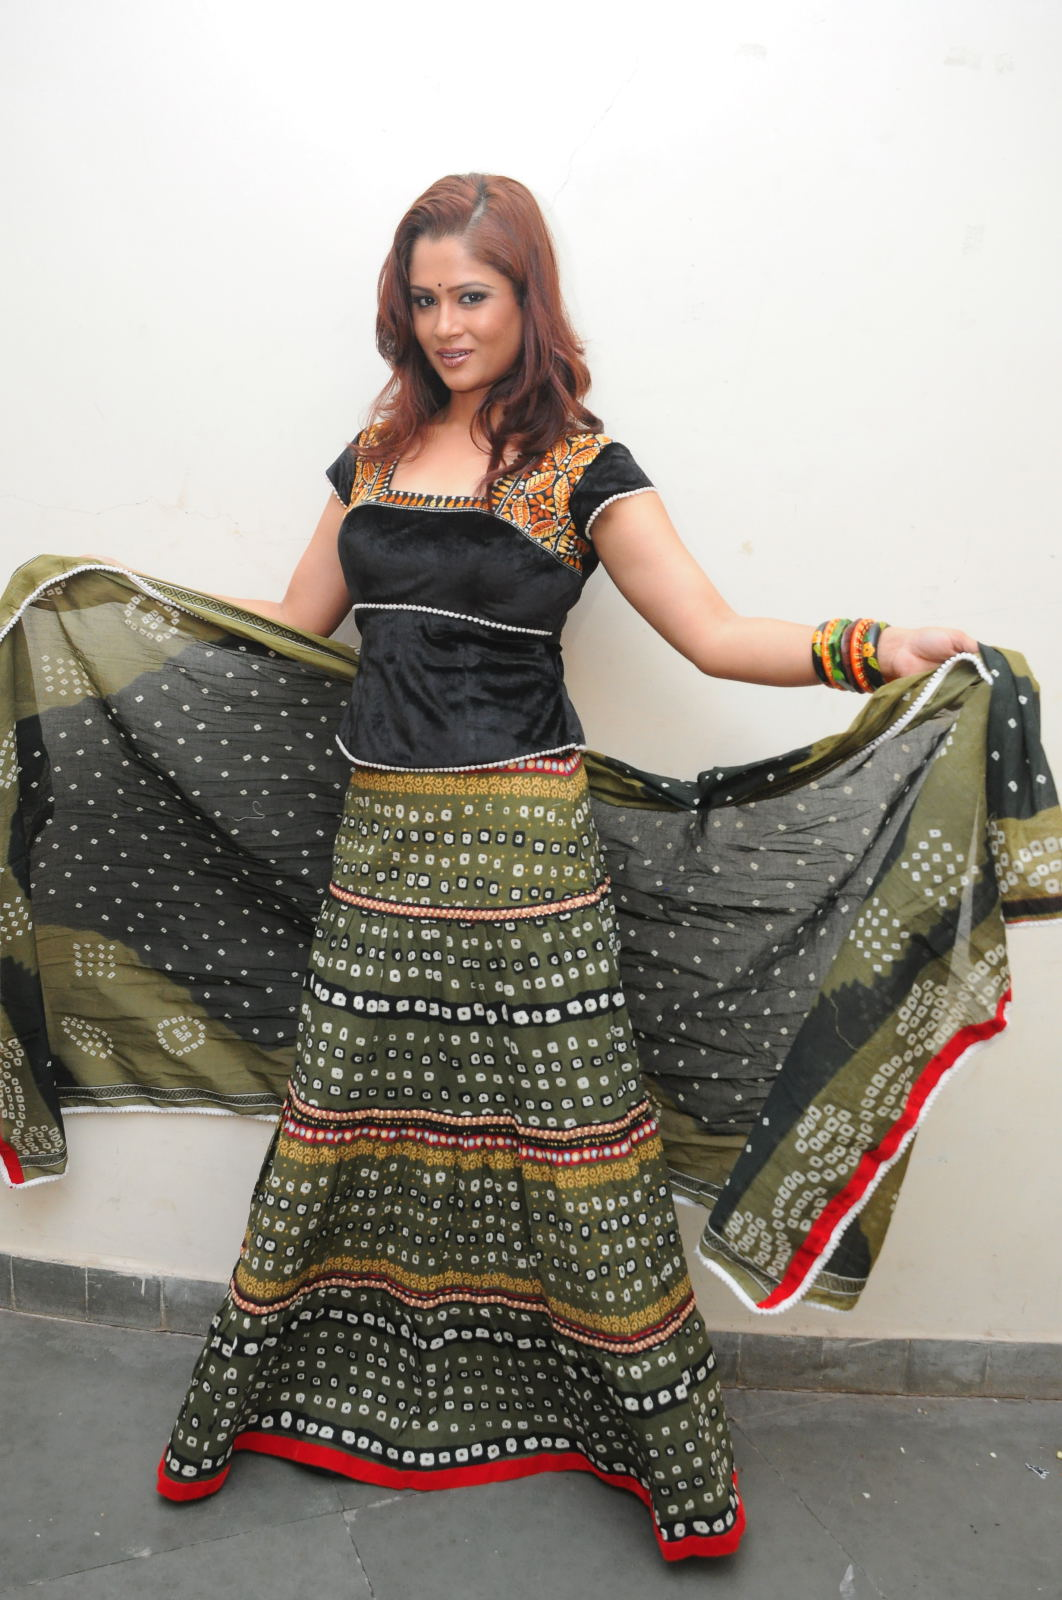 Shilpa Chakravarthy Latest Photo Shoot Stills | infosamay.com